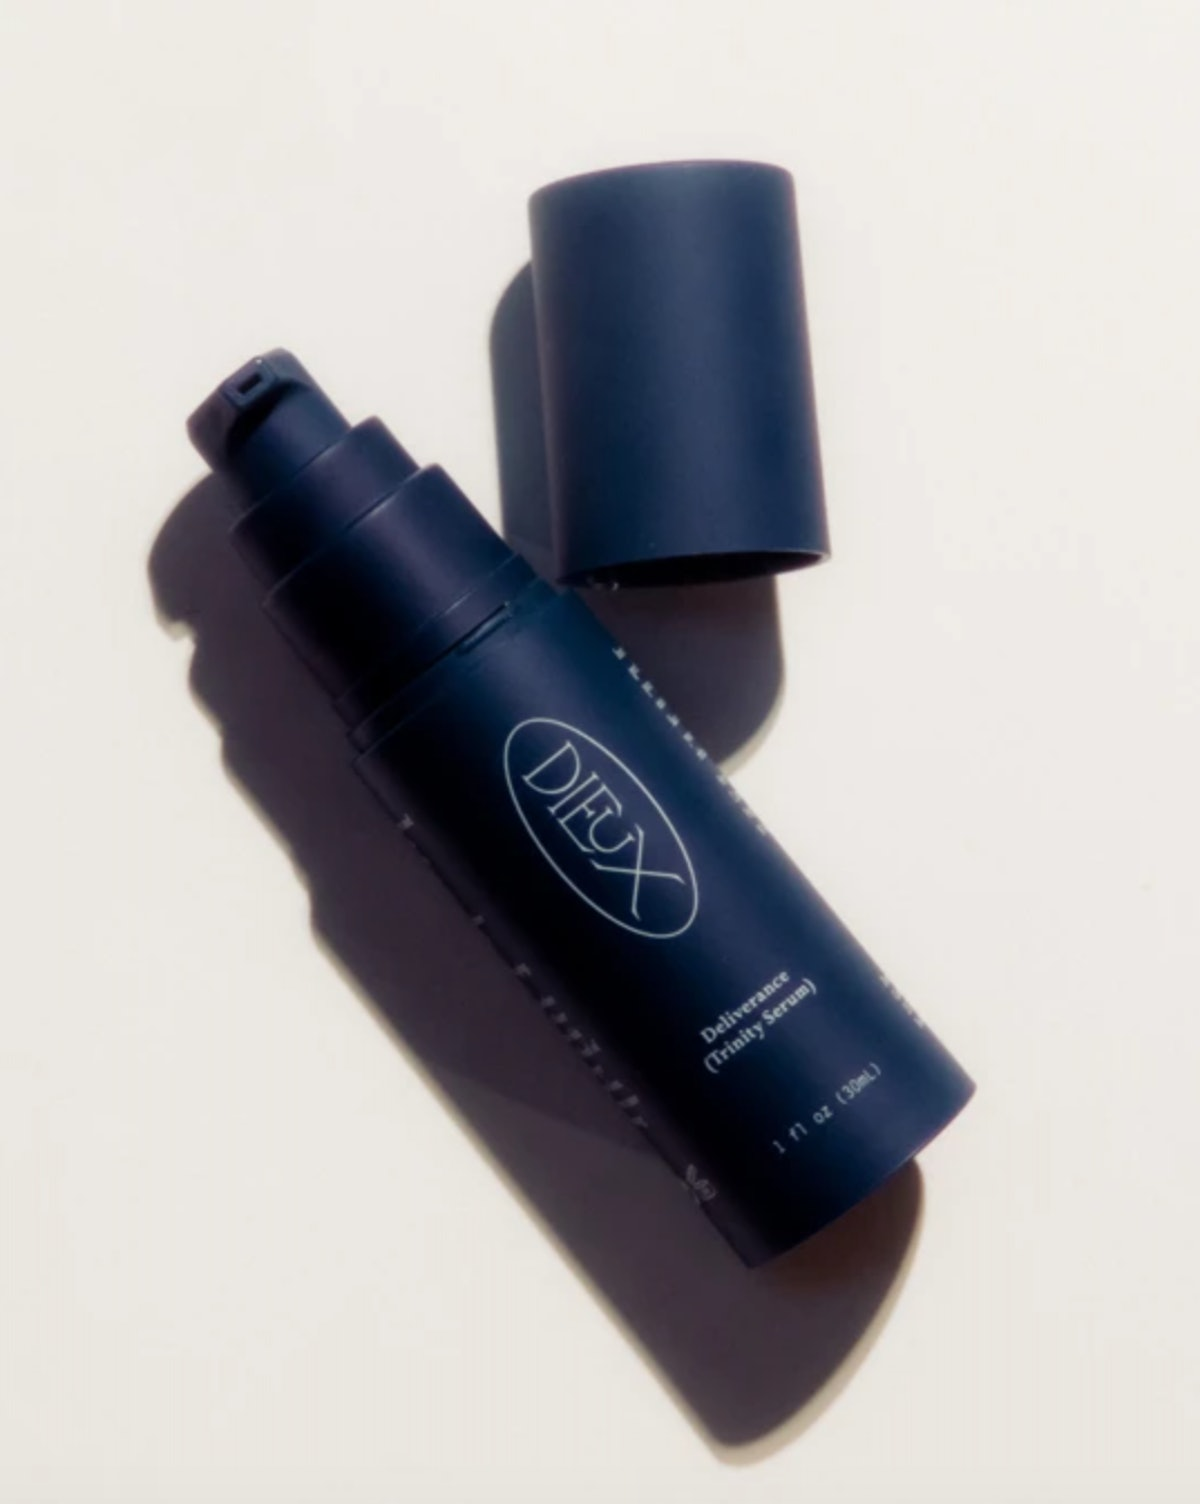 Deliverance Soothing Trinity Serum